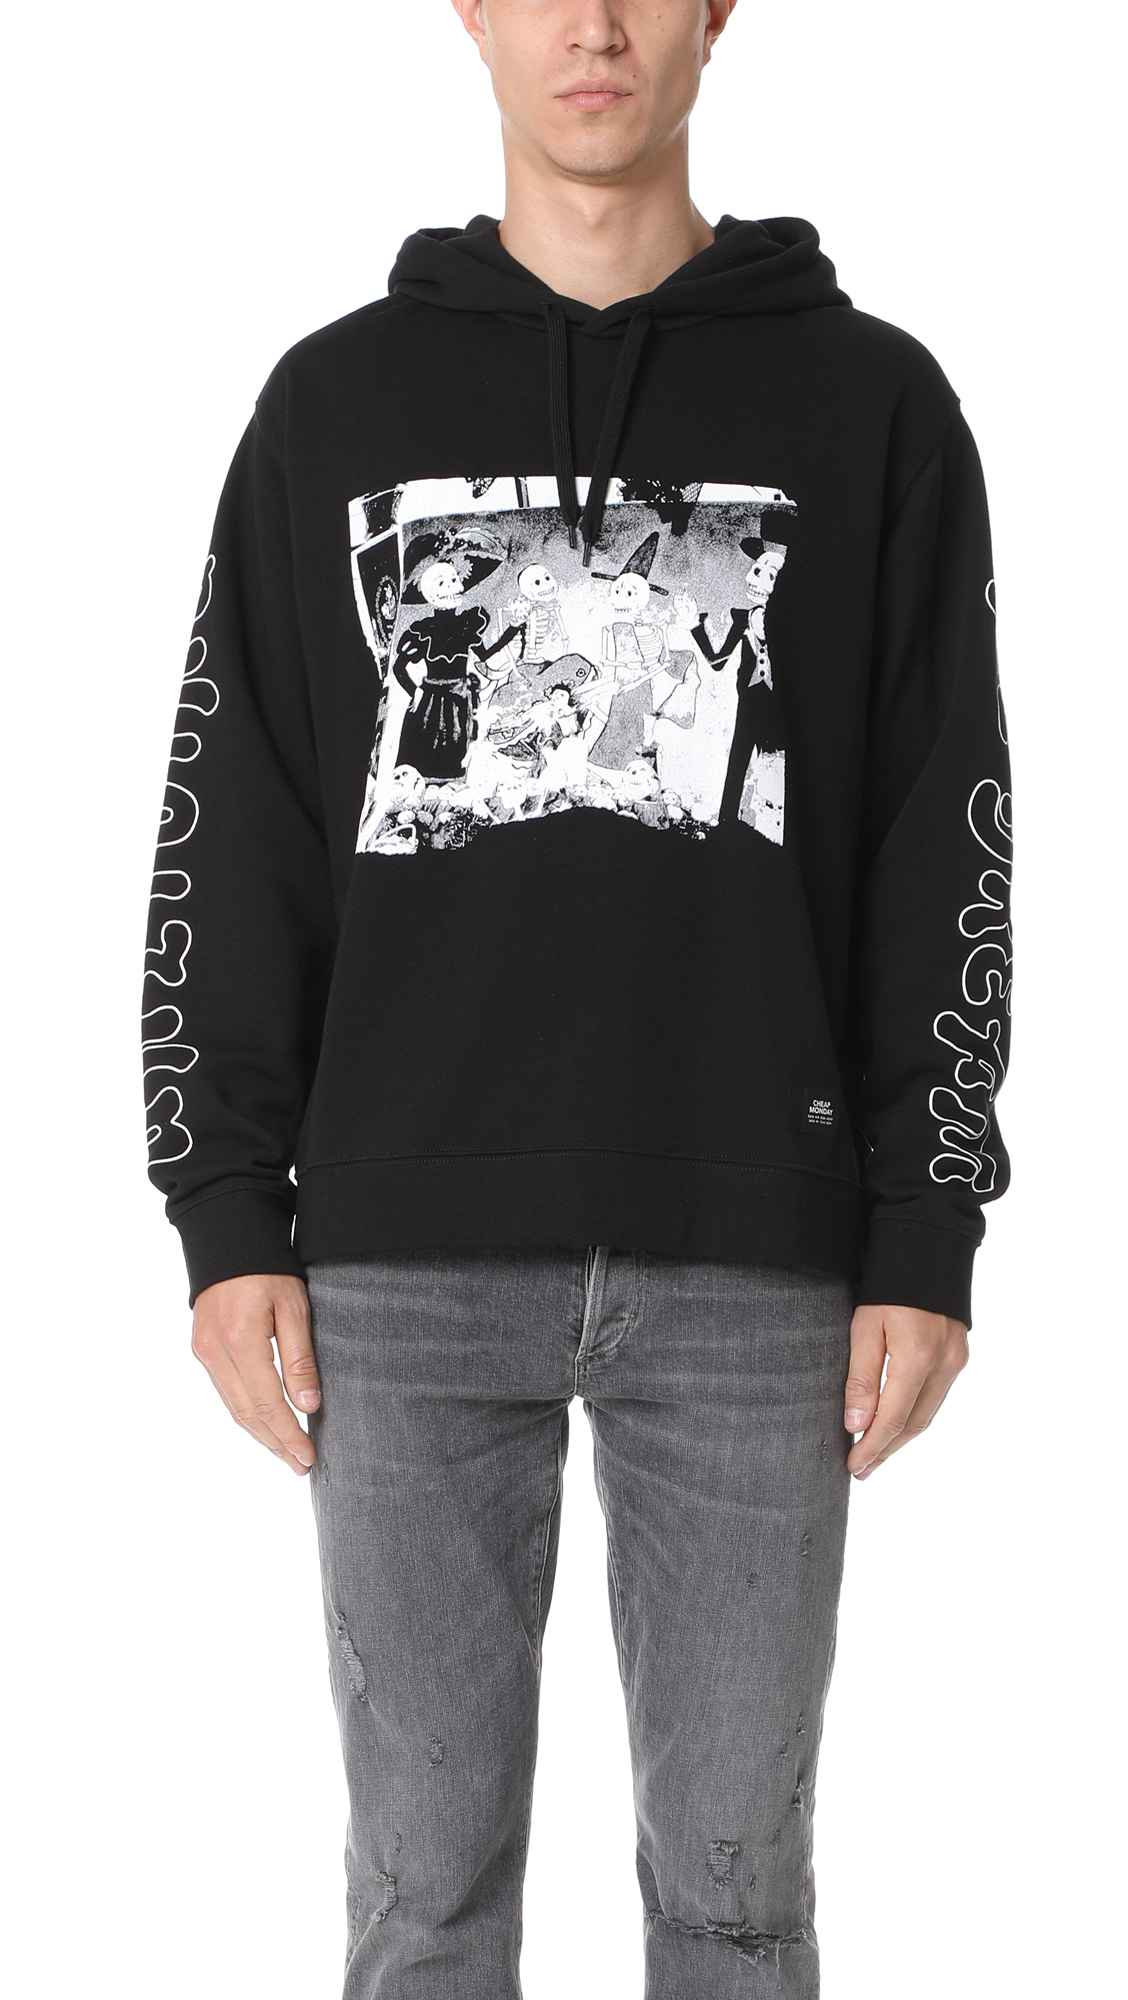 34c1105b2 Cheap Monday Pullover Hoodie | EAST DANE